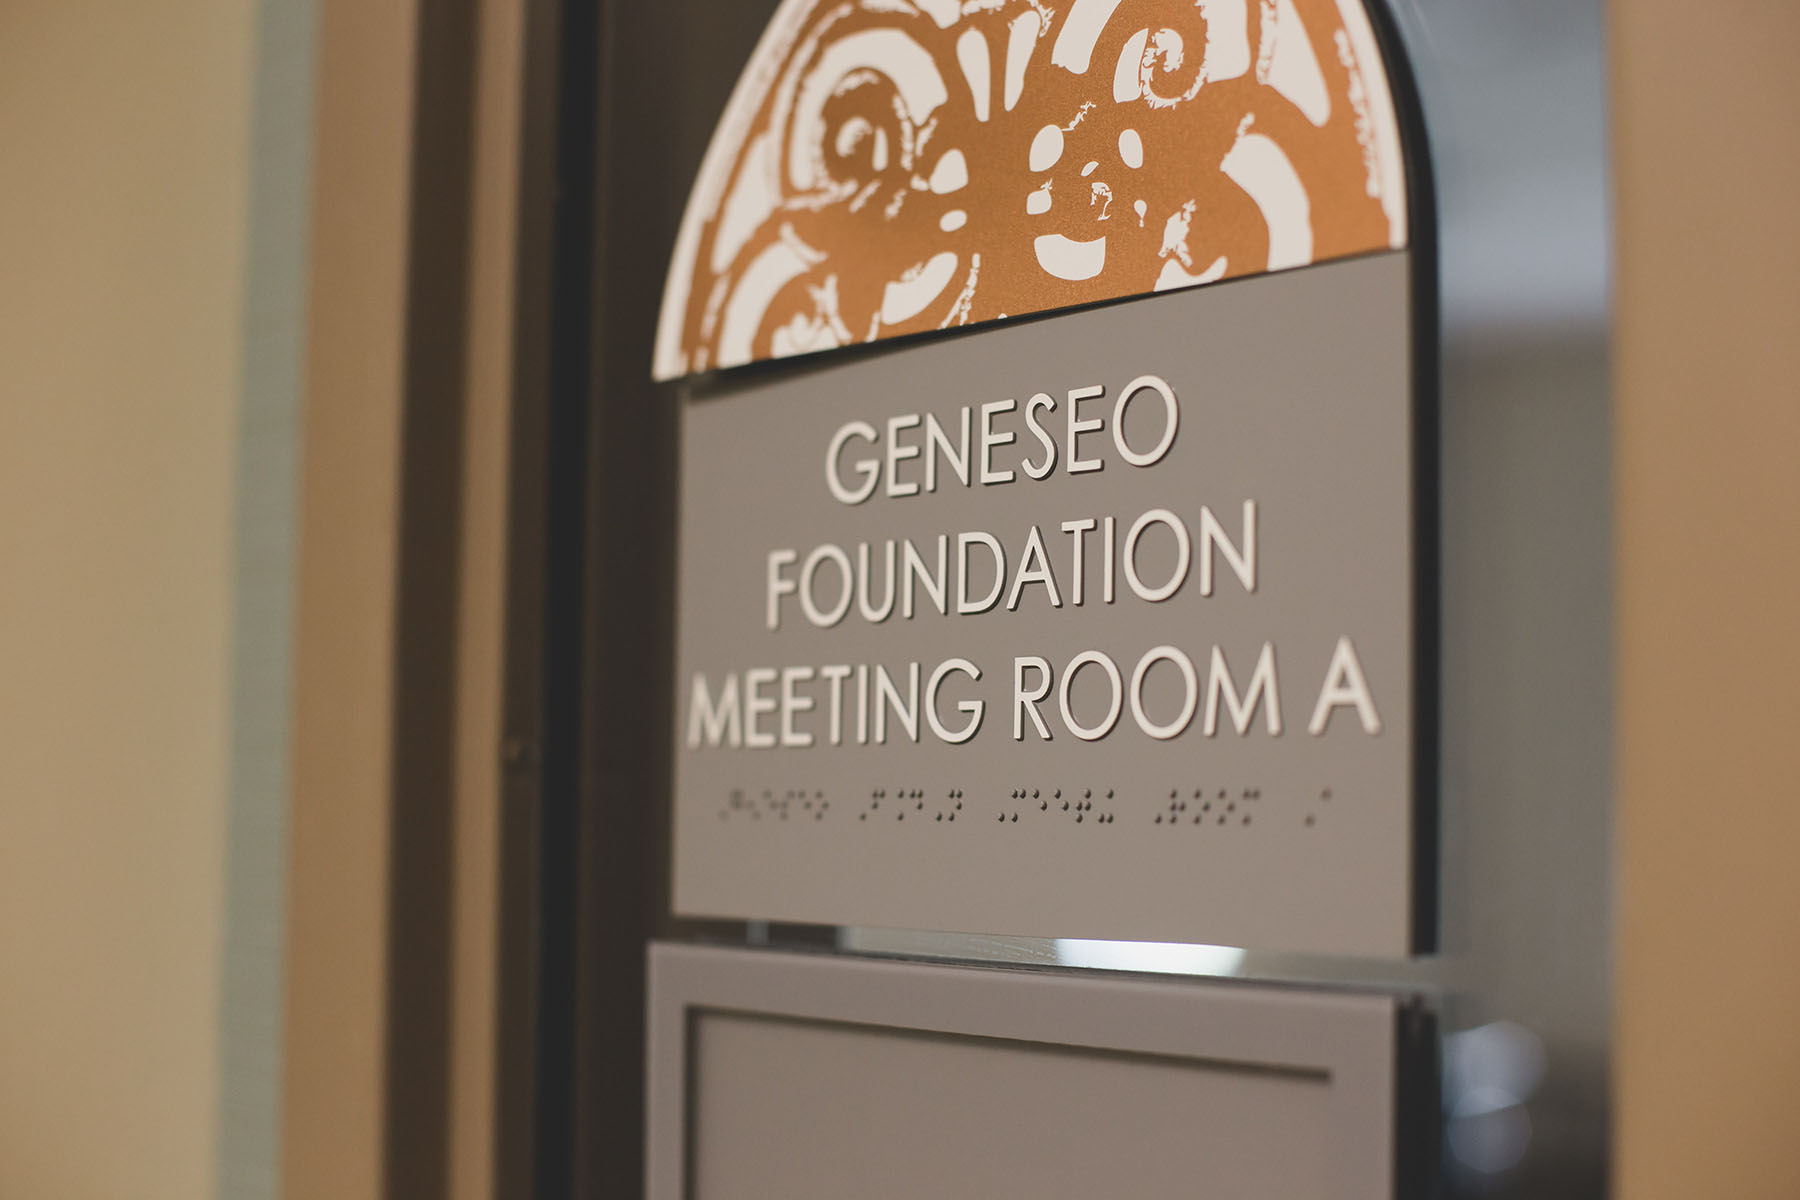 The George B. Dedrick library features a Geneseo Foundation Meeting Room for community use.